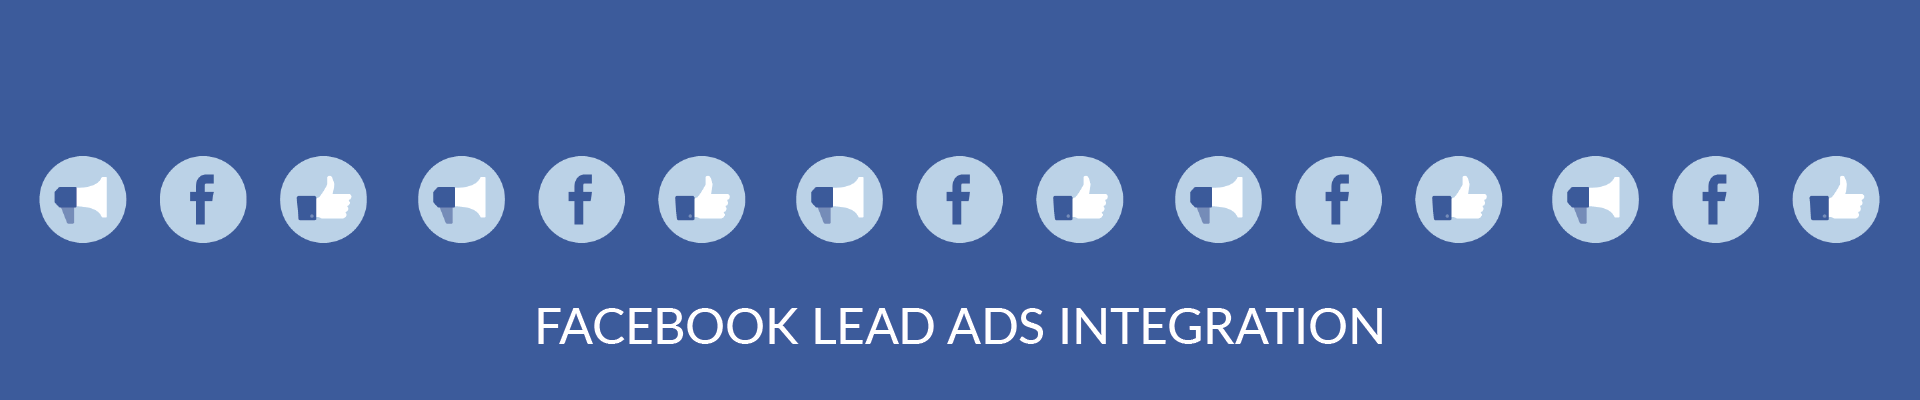 Facebook lead ads element